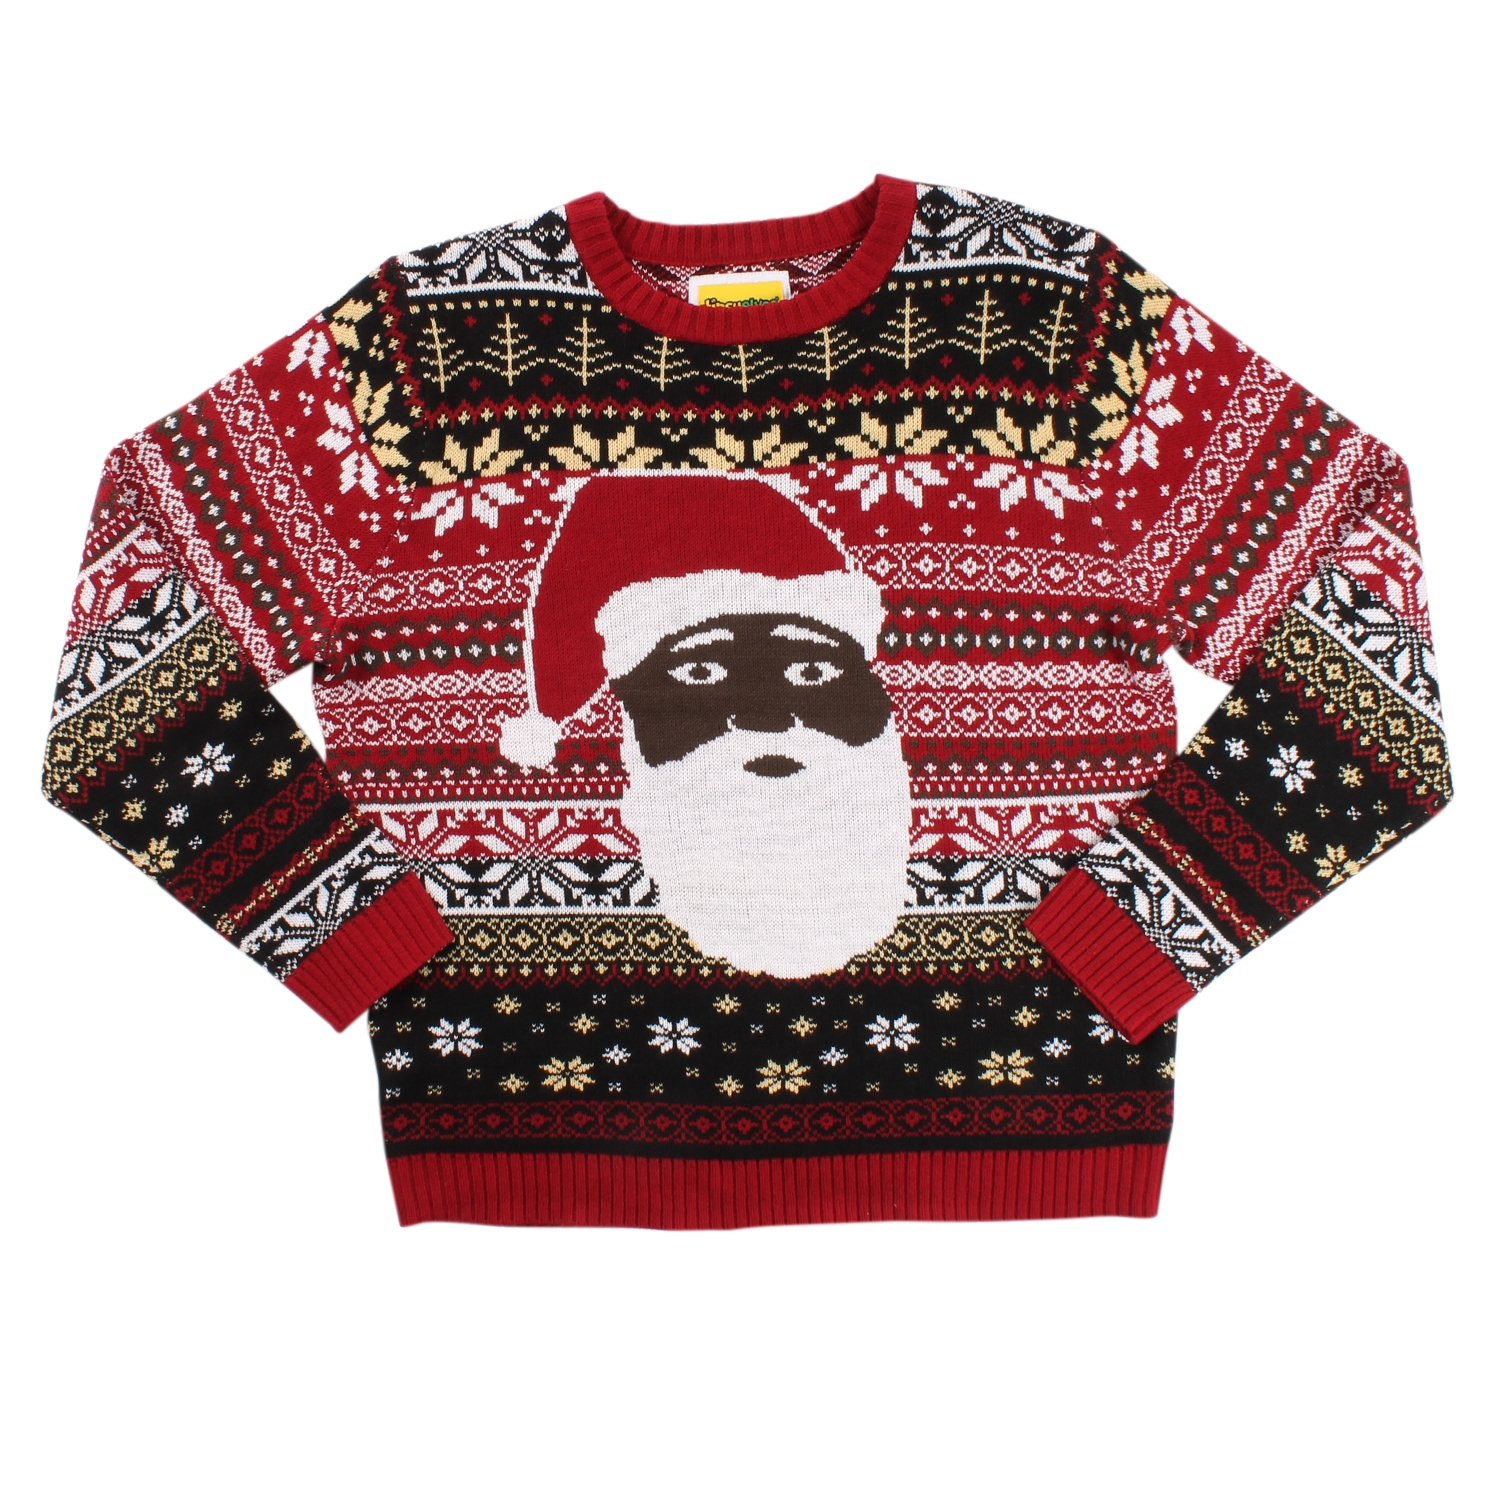 Black Santa - The Night Before - Christmas Sweater - PopCult Wear